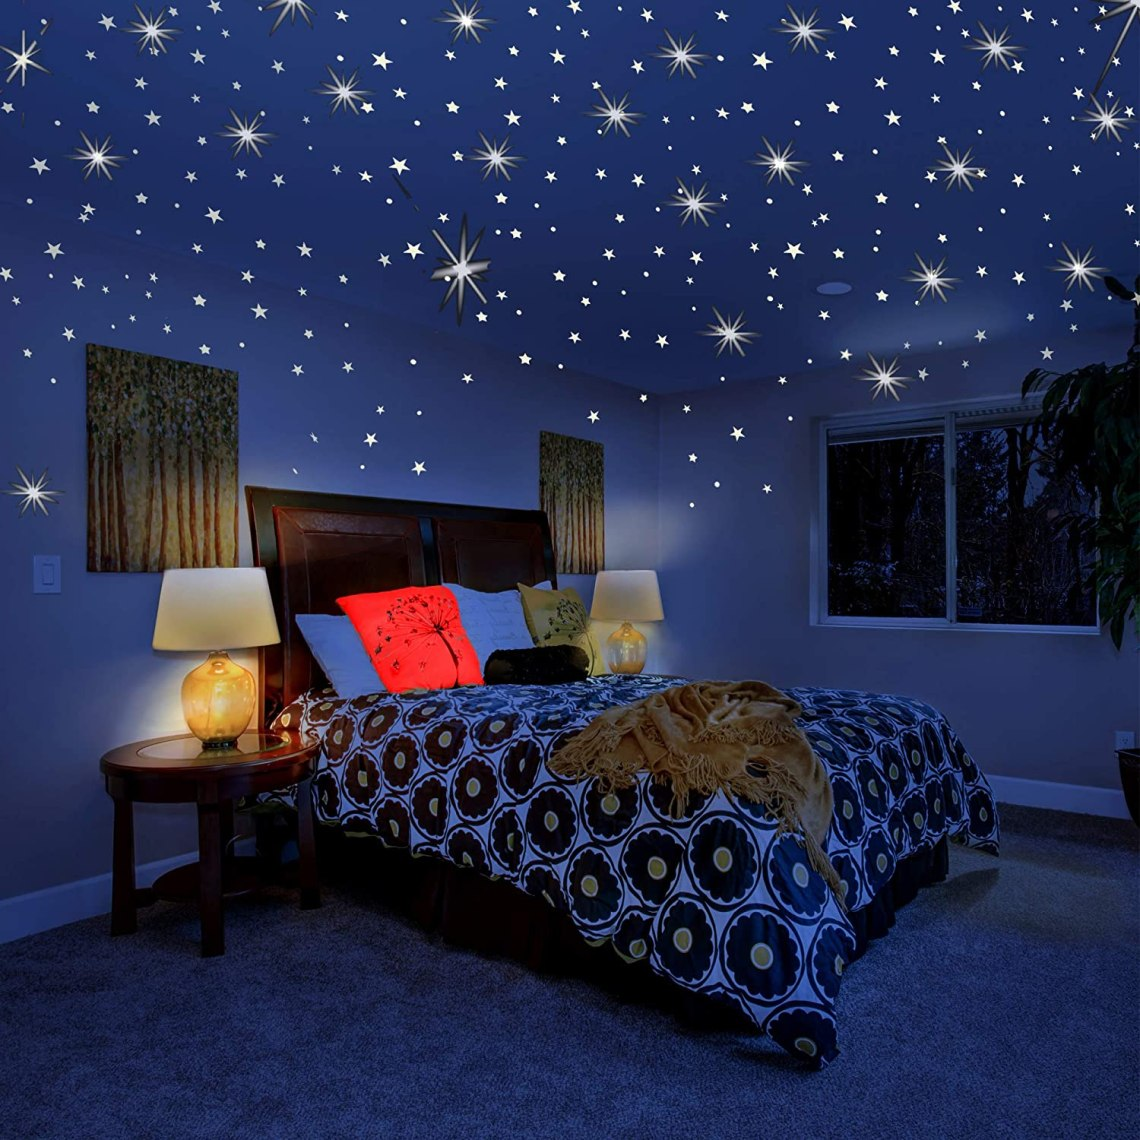 Buy Glow In The Dark Stars For Ceiling Or Wall Stickers Glowing Wall Decals Stickers Room Decor Kit Galaxy Glow Star Set And Solar System Decal For Kids Bedroom Decoration